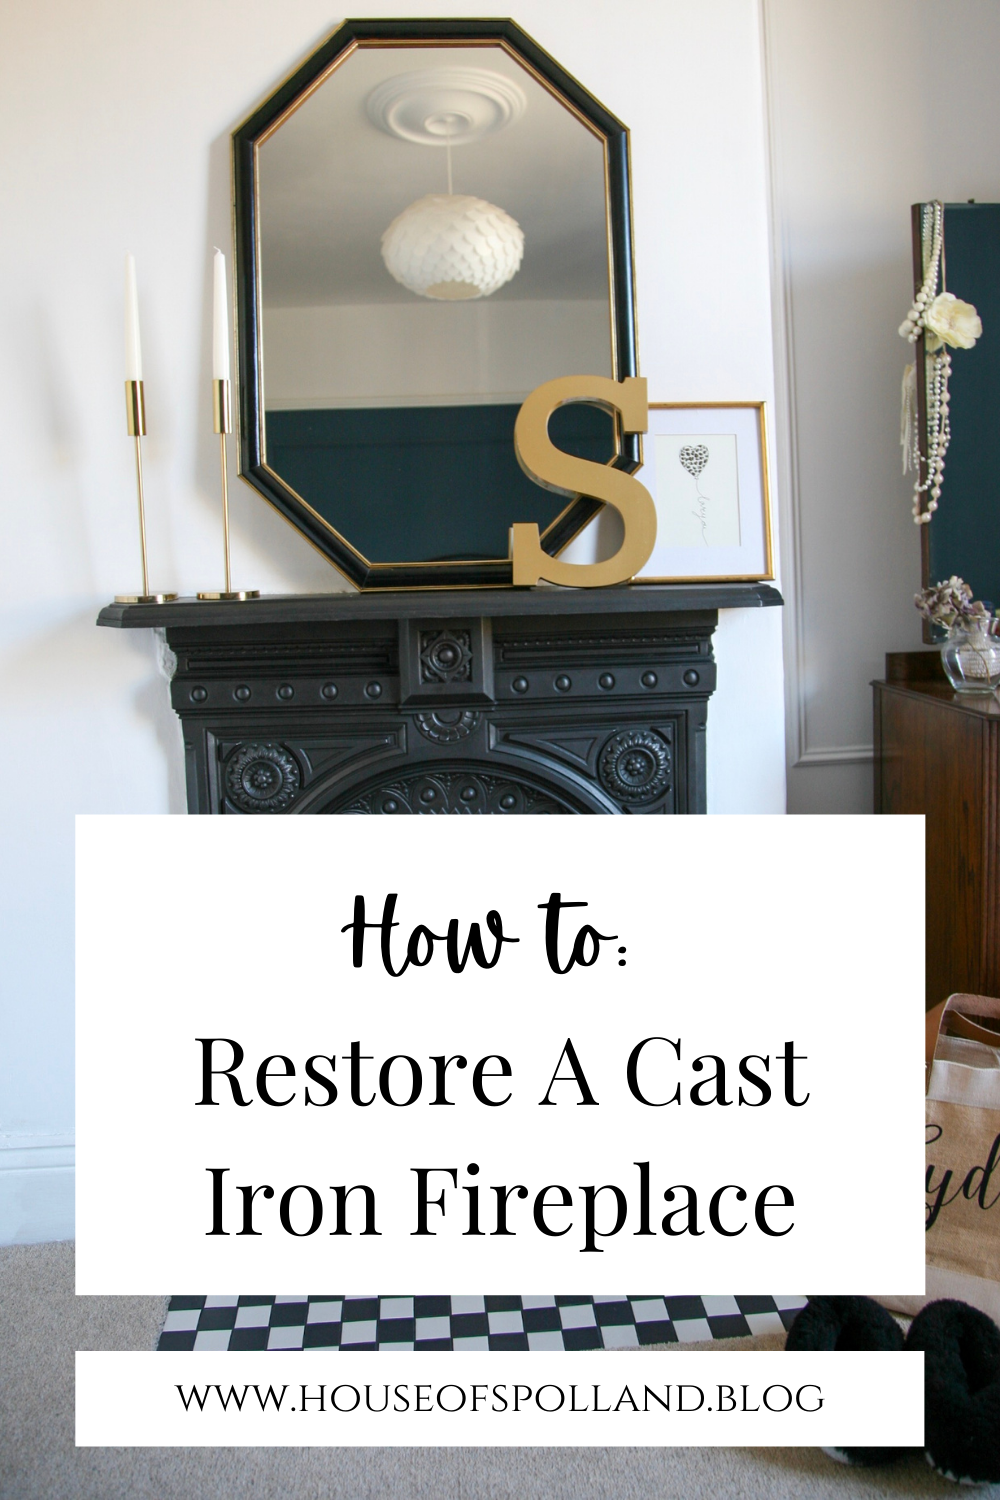 How to Restore A Cast Iron Fireplace